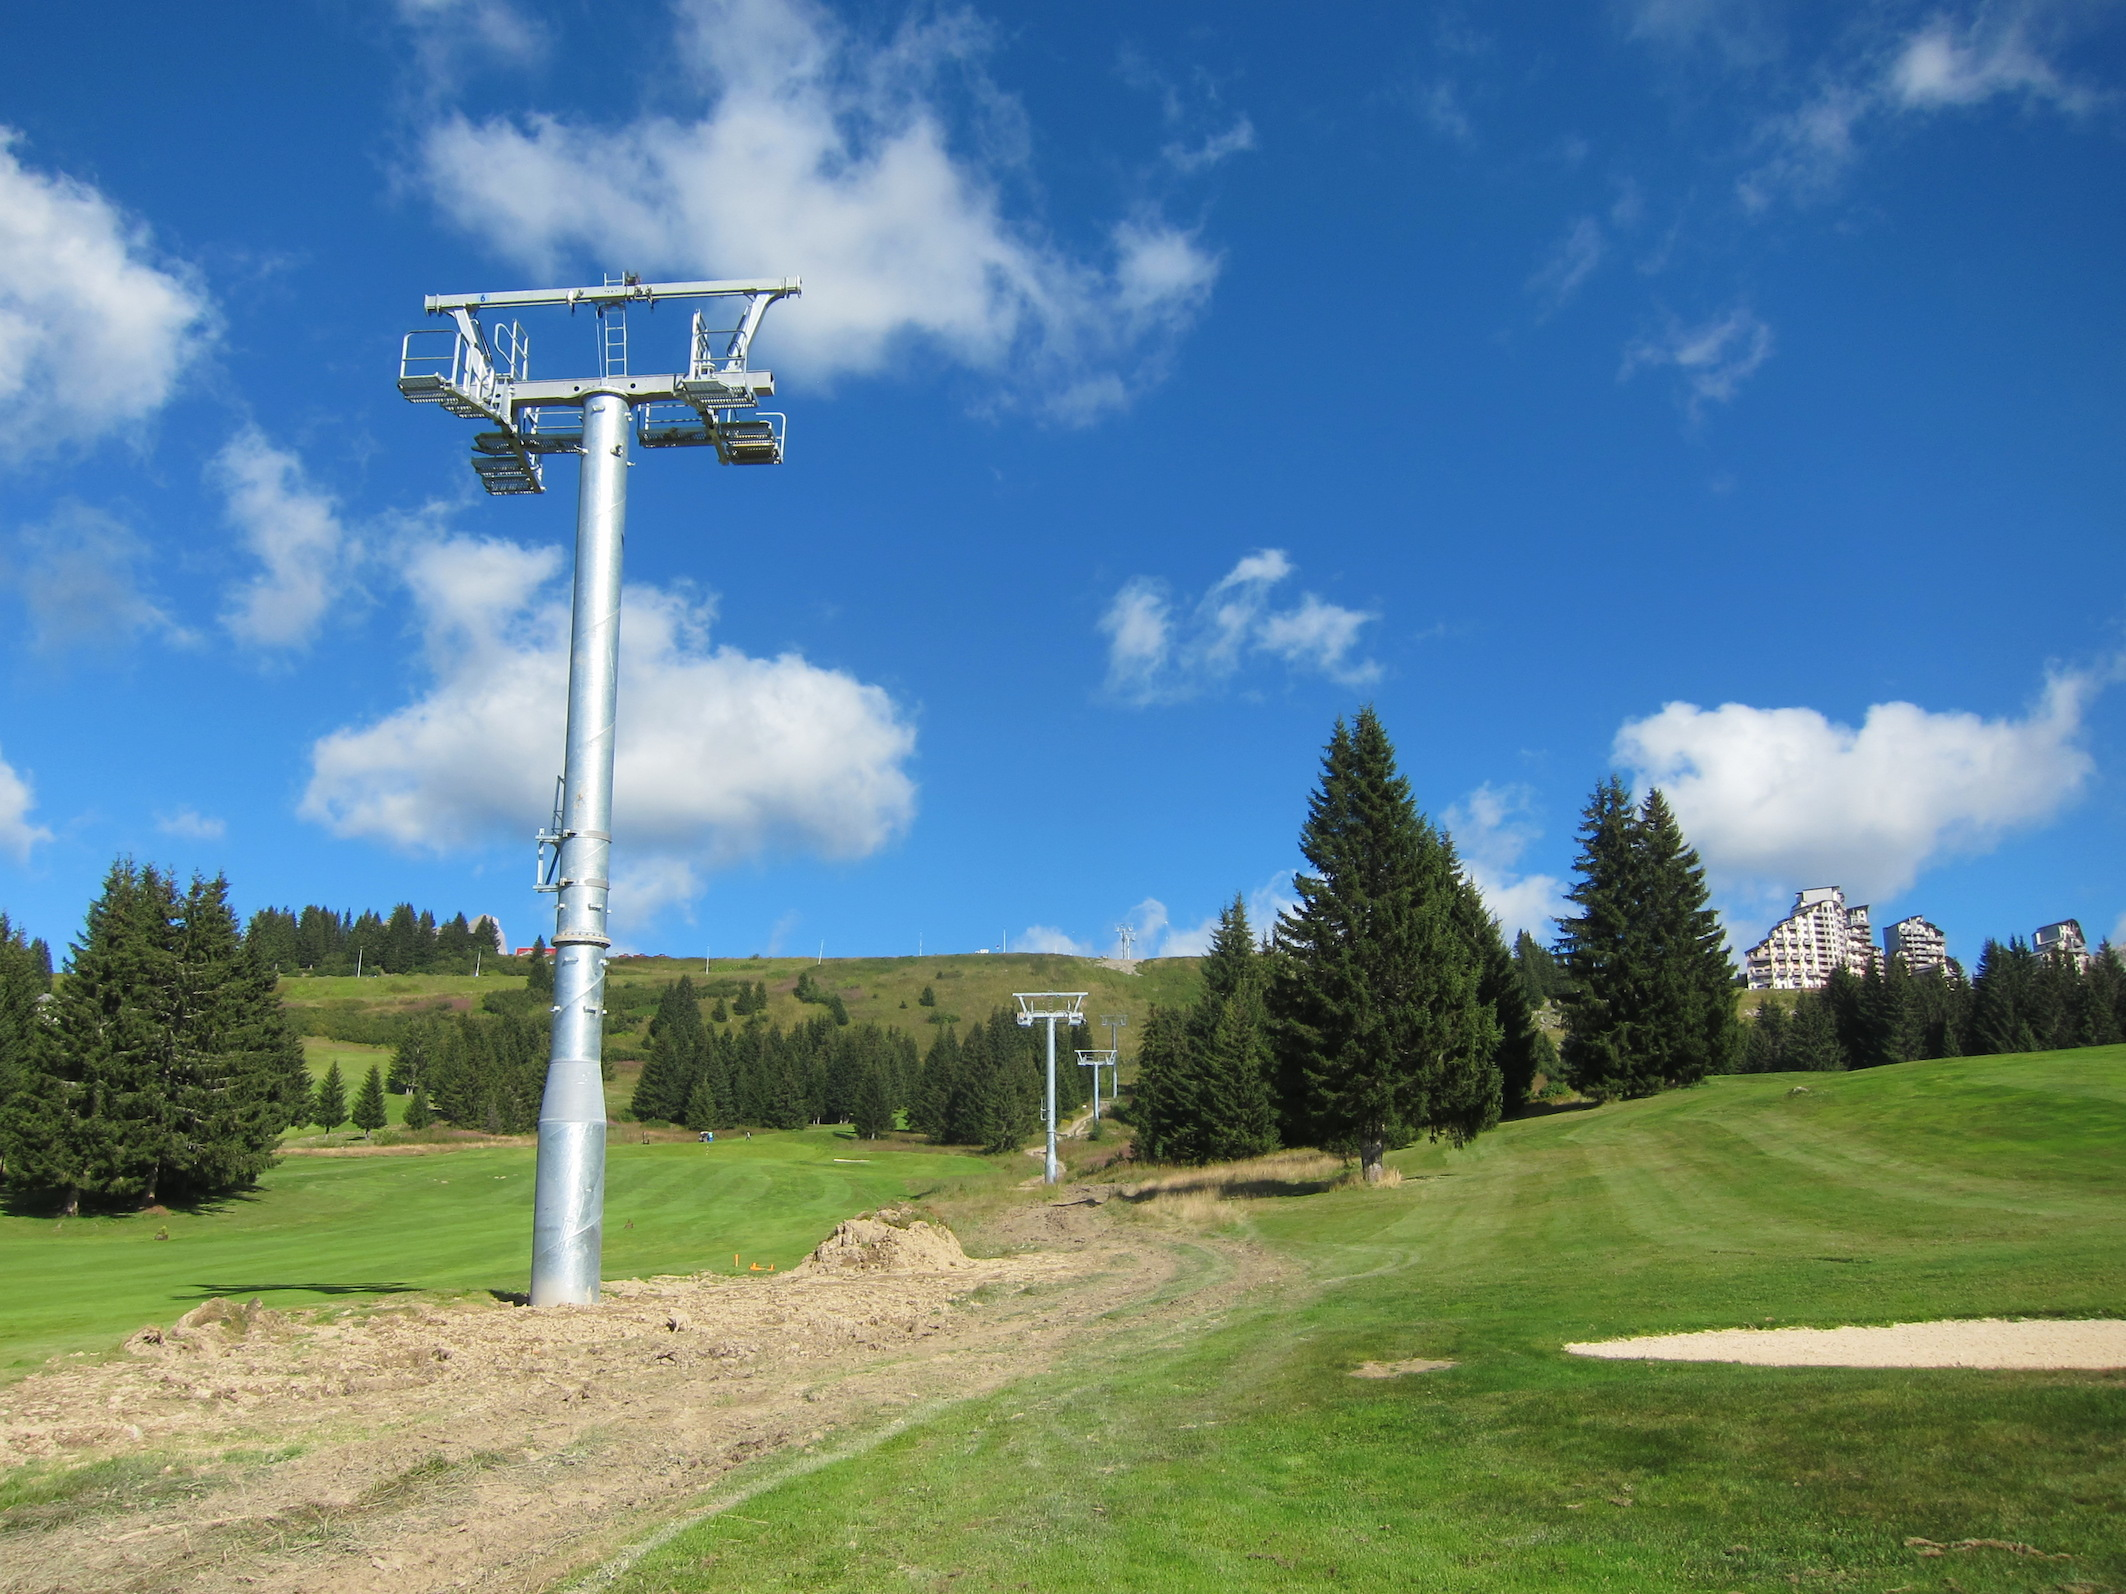 The new Proclou chairflit over the Avoriaz golf course